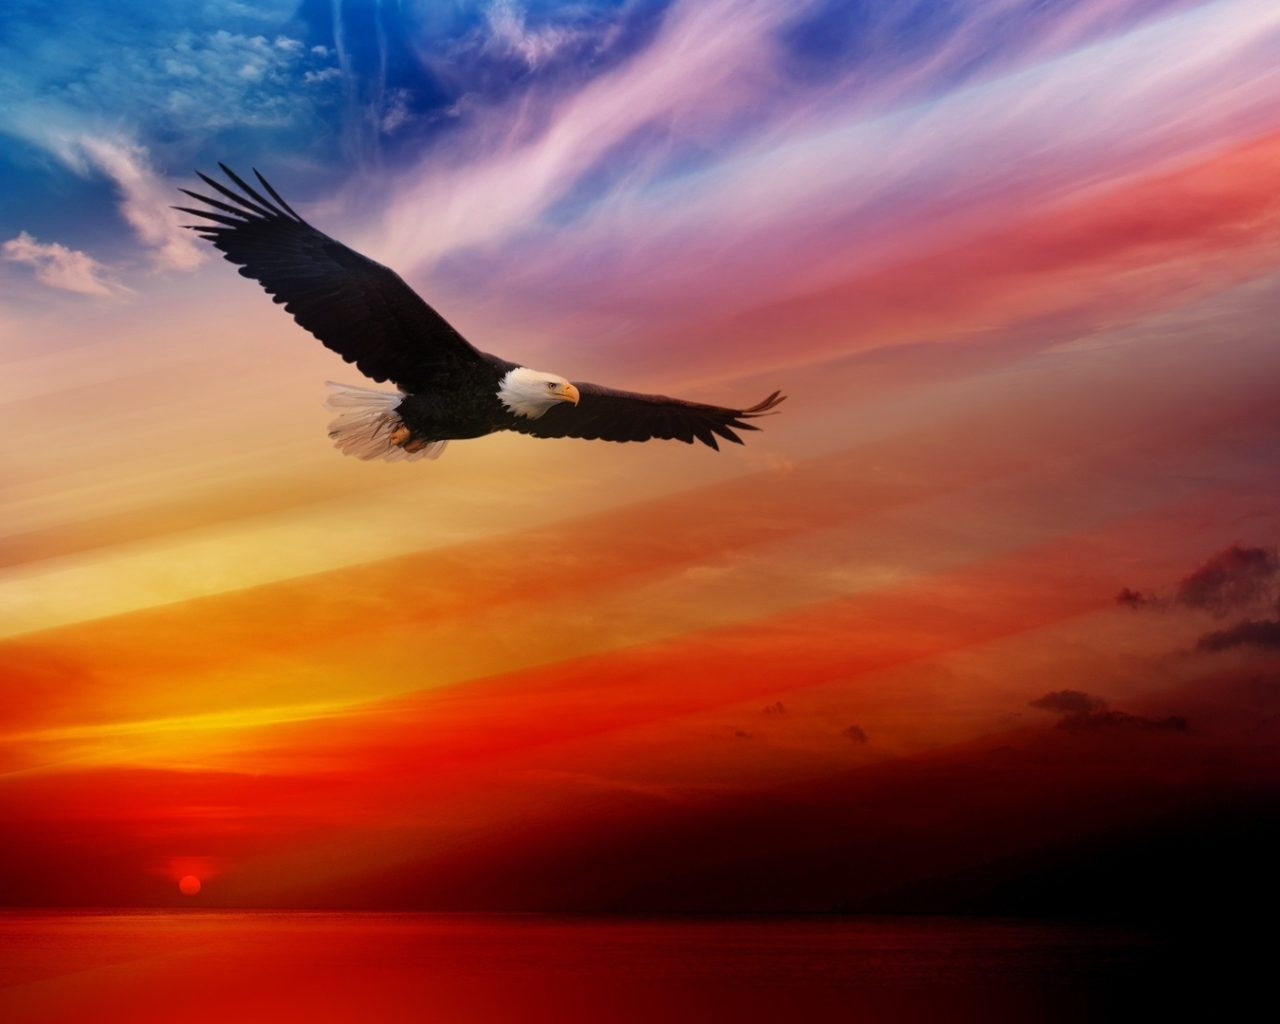 Can You Get Moving Wallpapers For Iphone X Bald Eagle Flying At Sunset Red Sky Desktop Hd Wallpaper